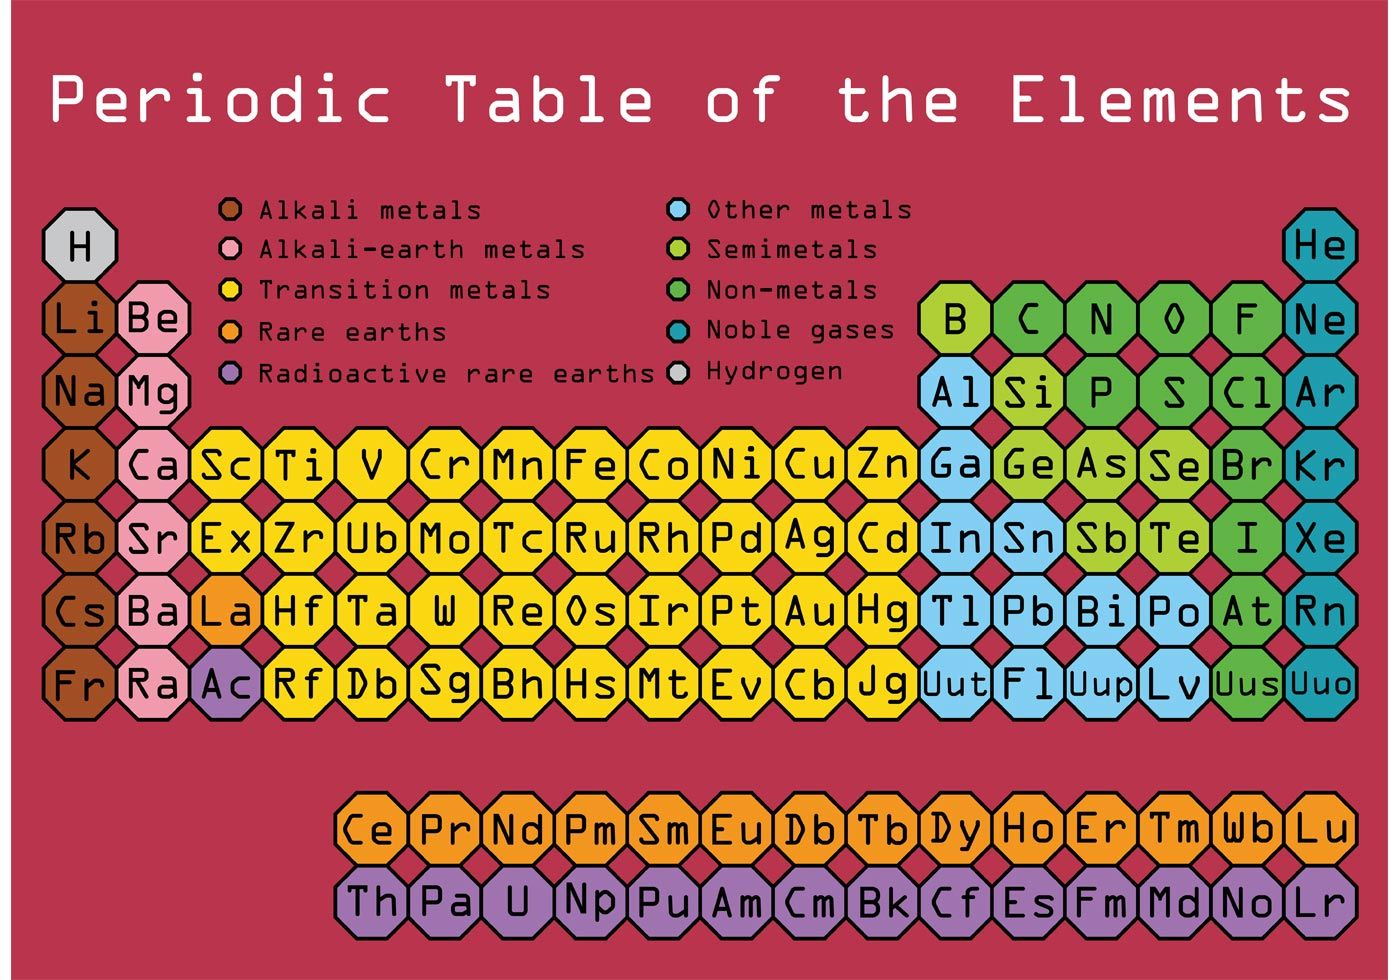 Periodic table rare earth metals gallery periodic table images other metals periodic table images periodic table images periodic table of elements periodic table font logo gamestrikefo Images